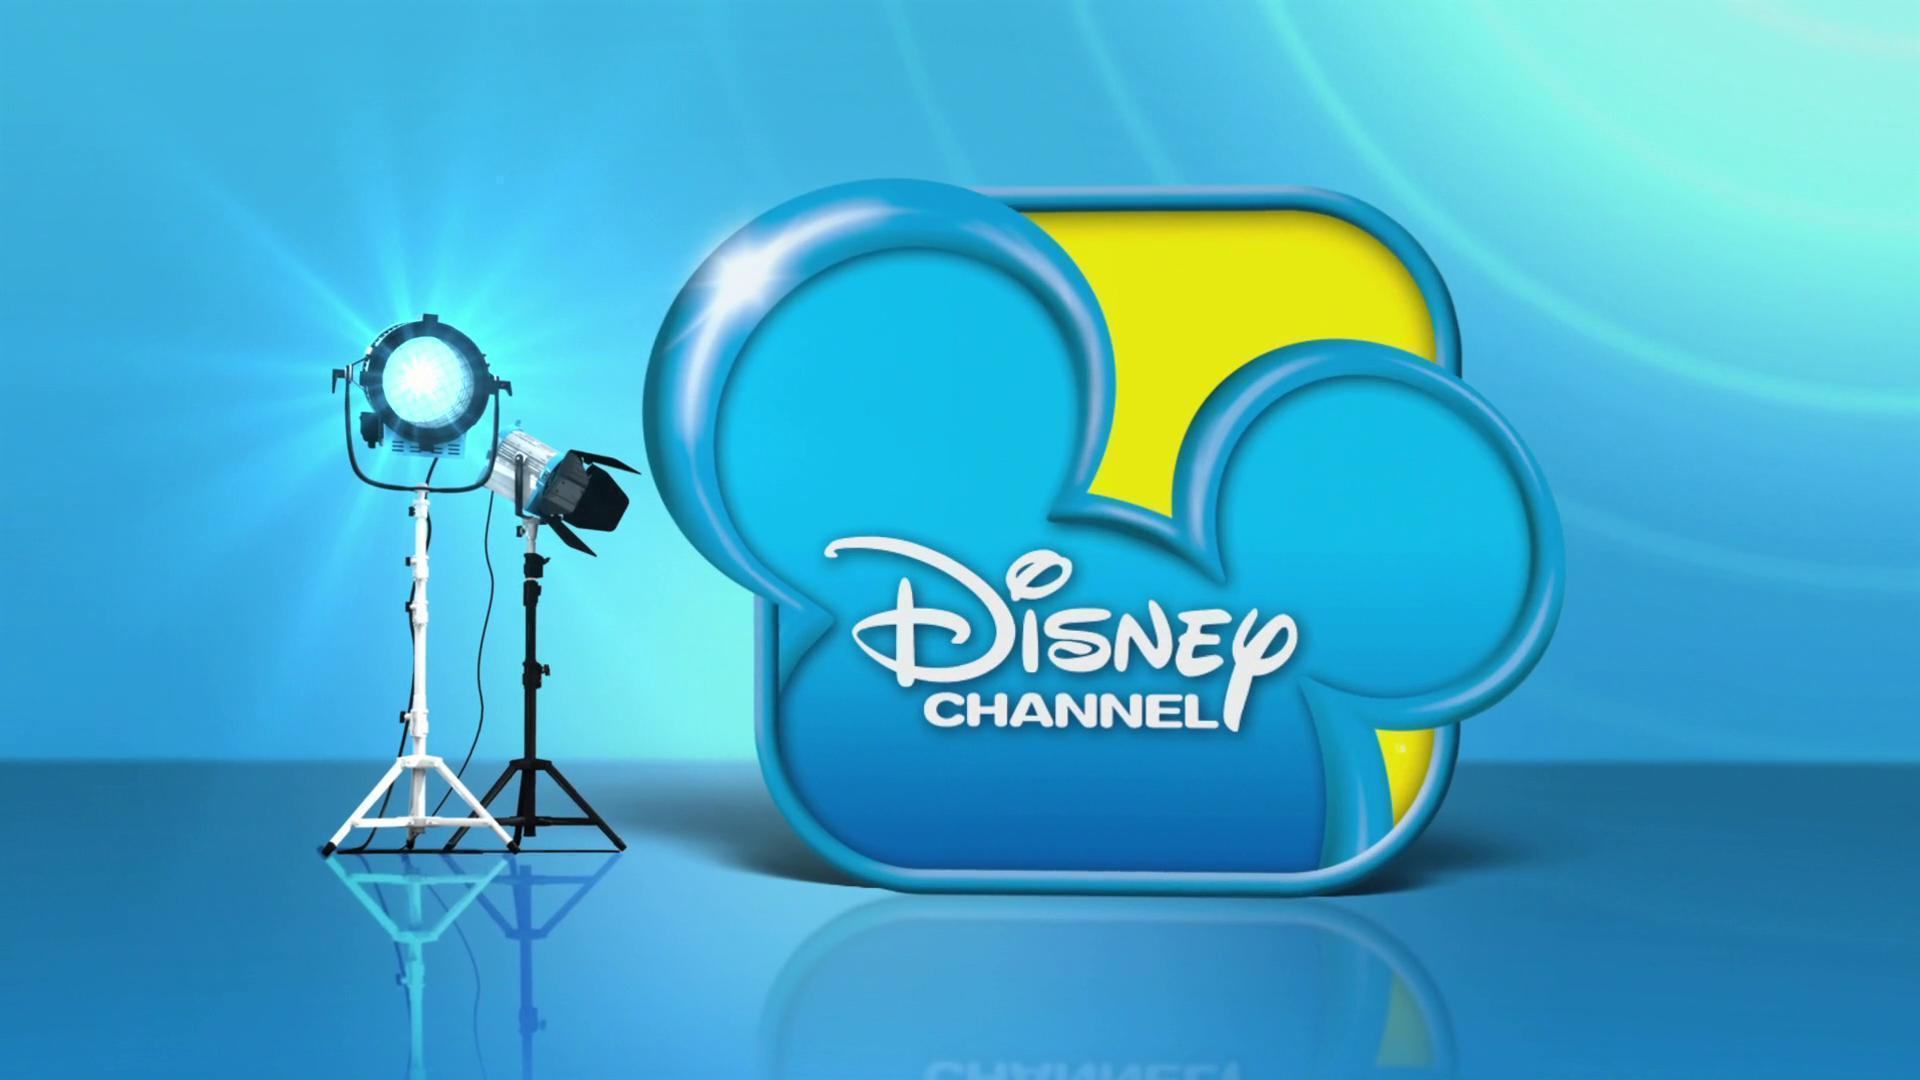 Disney Channel Wallpapers 1920x1080